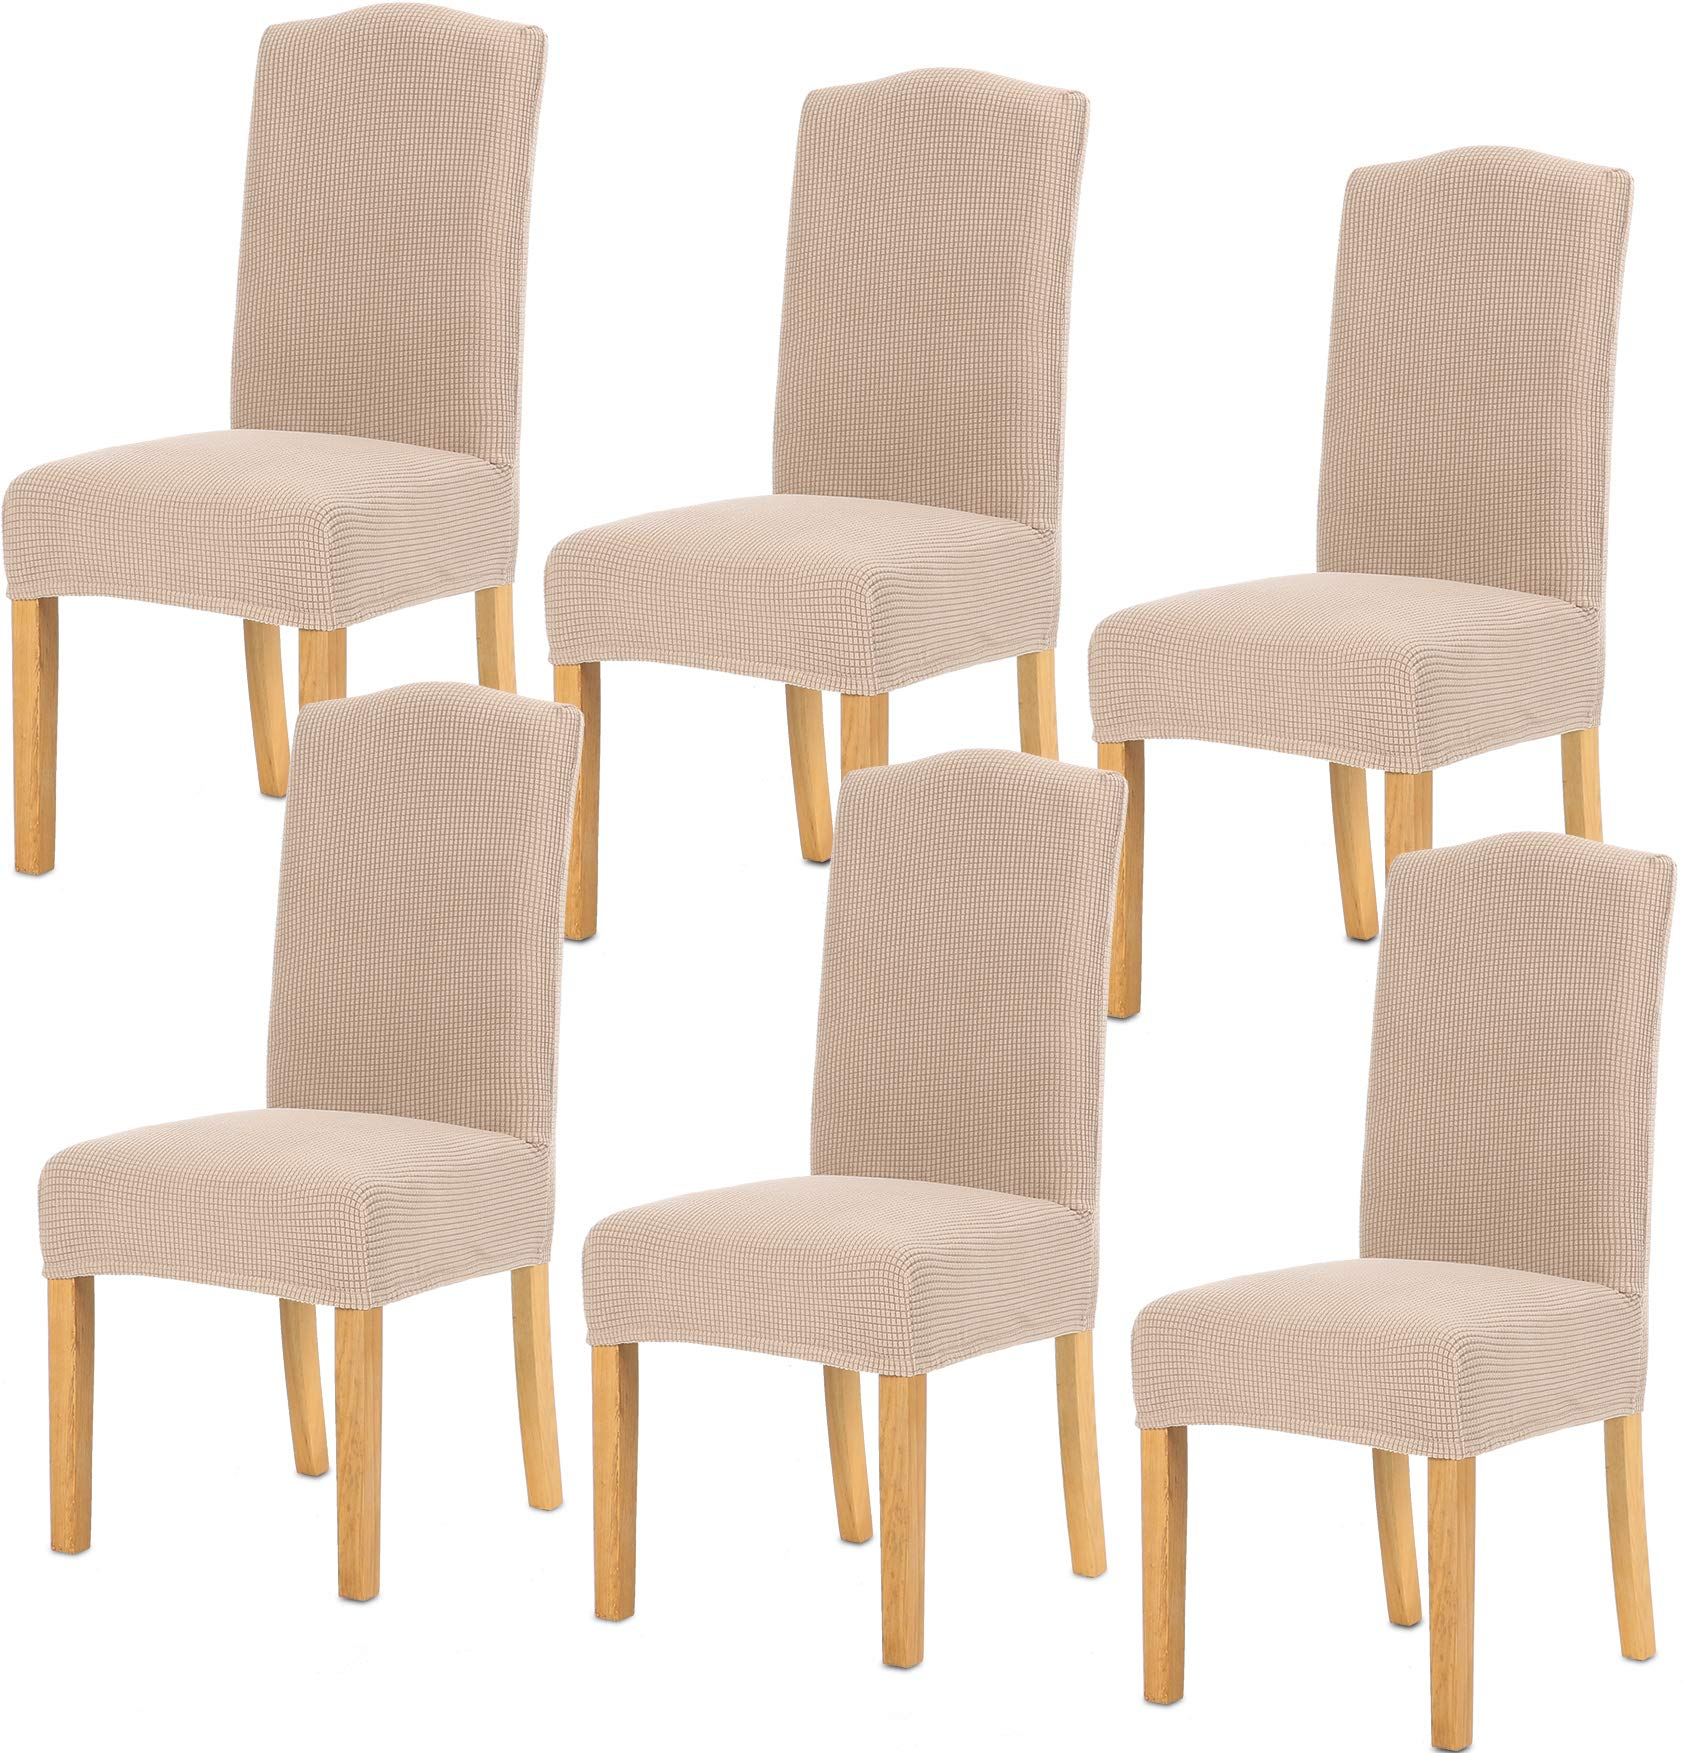 Tianshu Dining Chair Cover Stretch Chair Slipcovers 6 Pack Removable Washable Chair Slipcovers For Hotel Dining Room Ceremony Banquet Wedding Party Decor 6 Pack Sand Buy Online In Dominica At Dominica Desertcart Com Productid 124808868